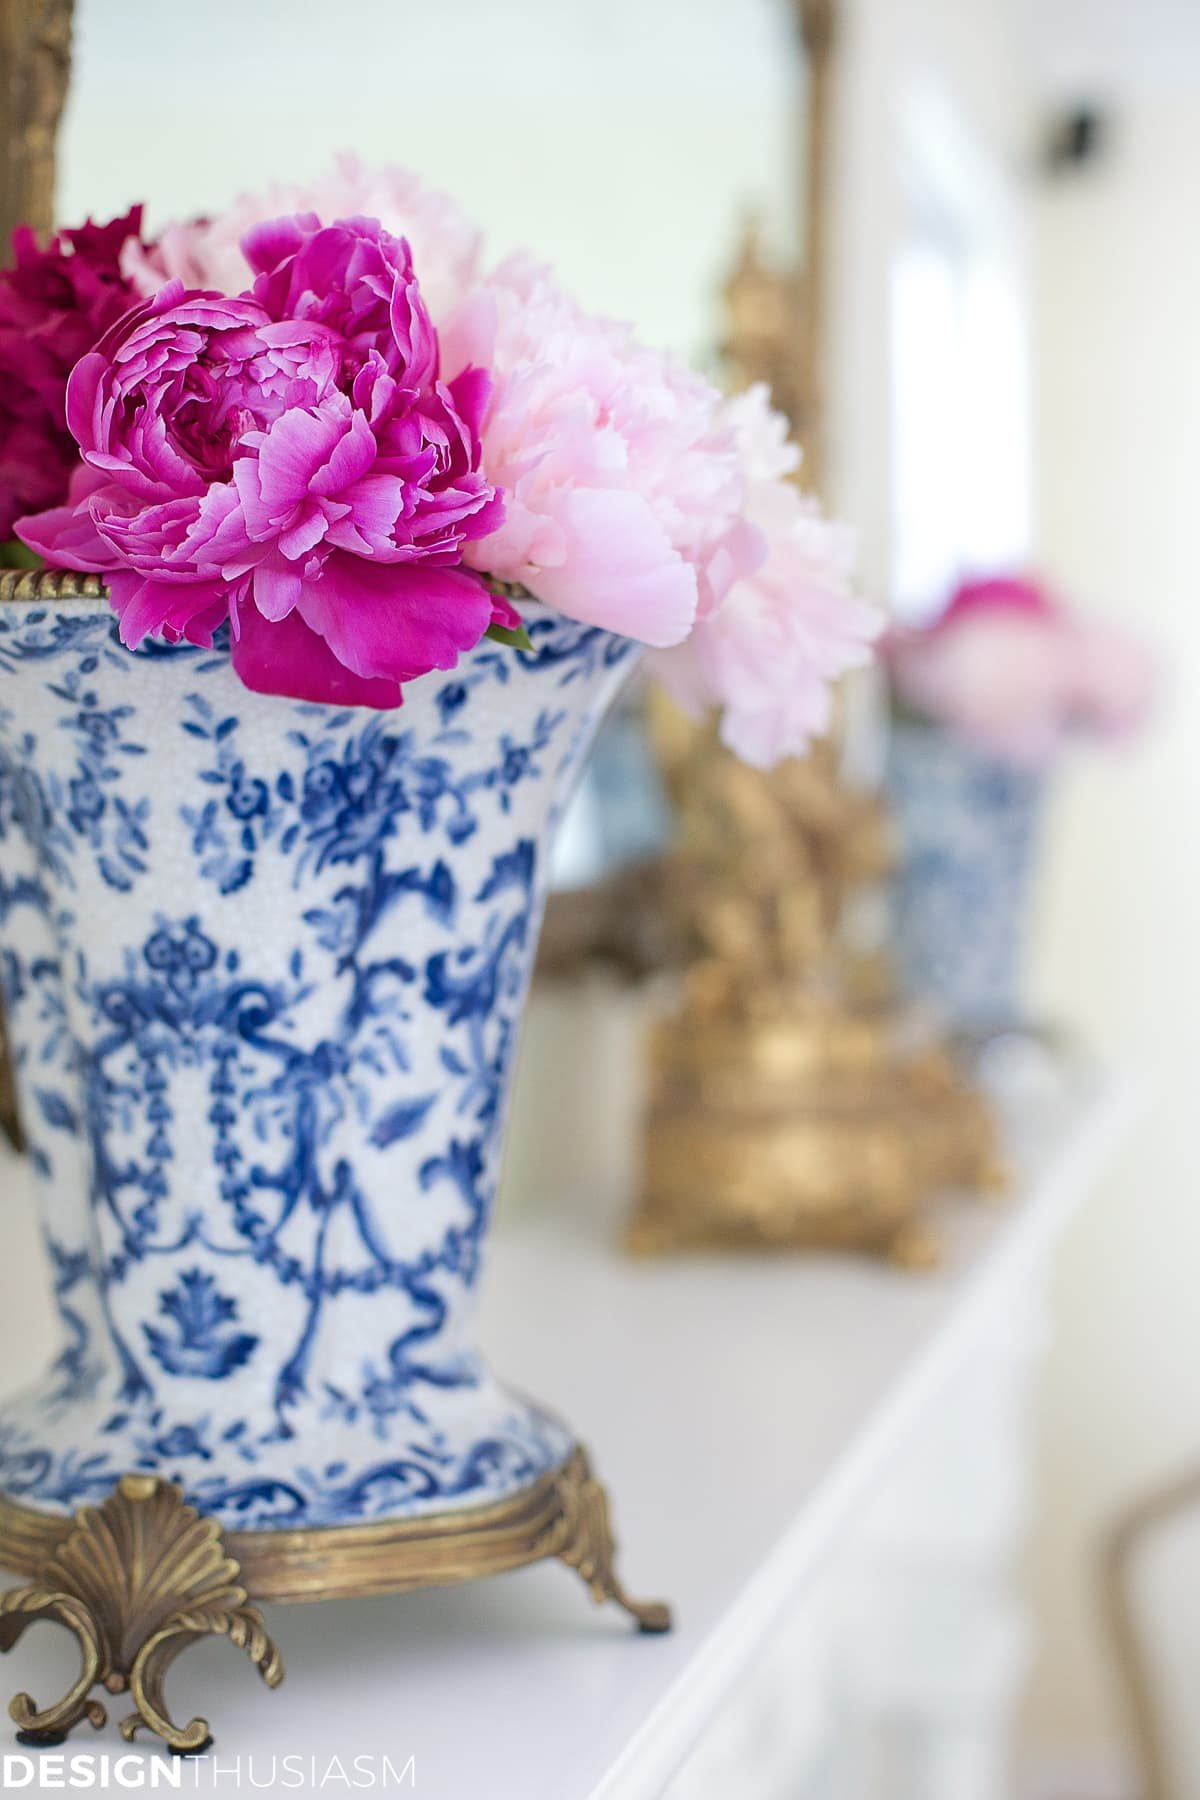 flower arrangement ideas with pink peonies